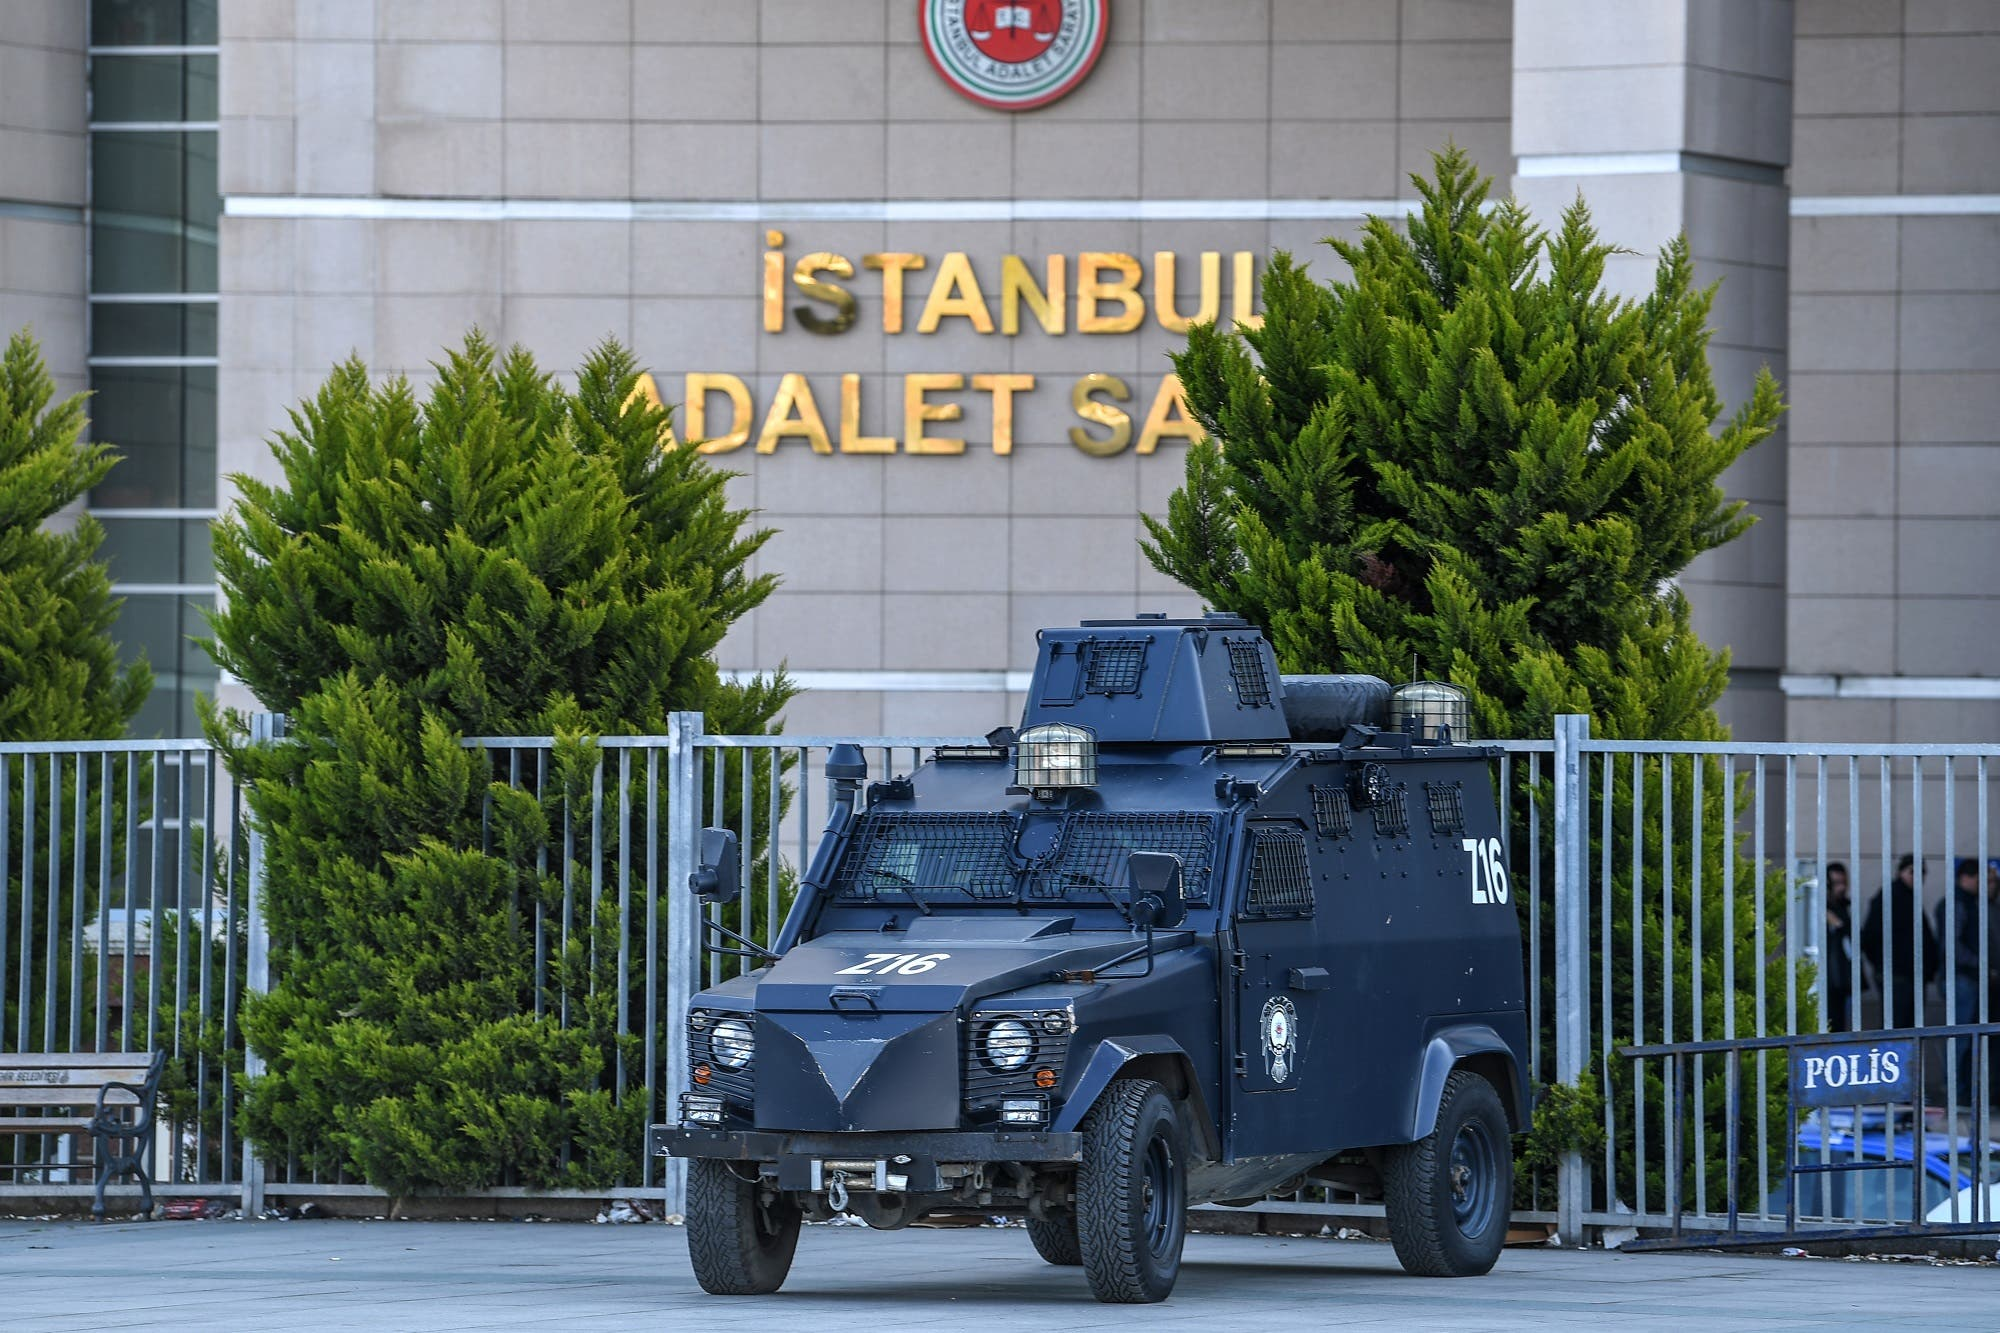 An armored Turkish police vehicle stands outside the courthouse in Istanbul. (File photo: AFP)